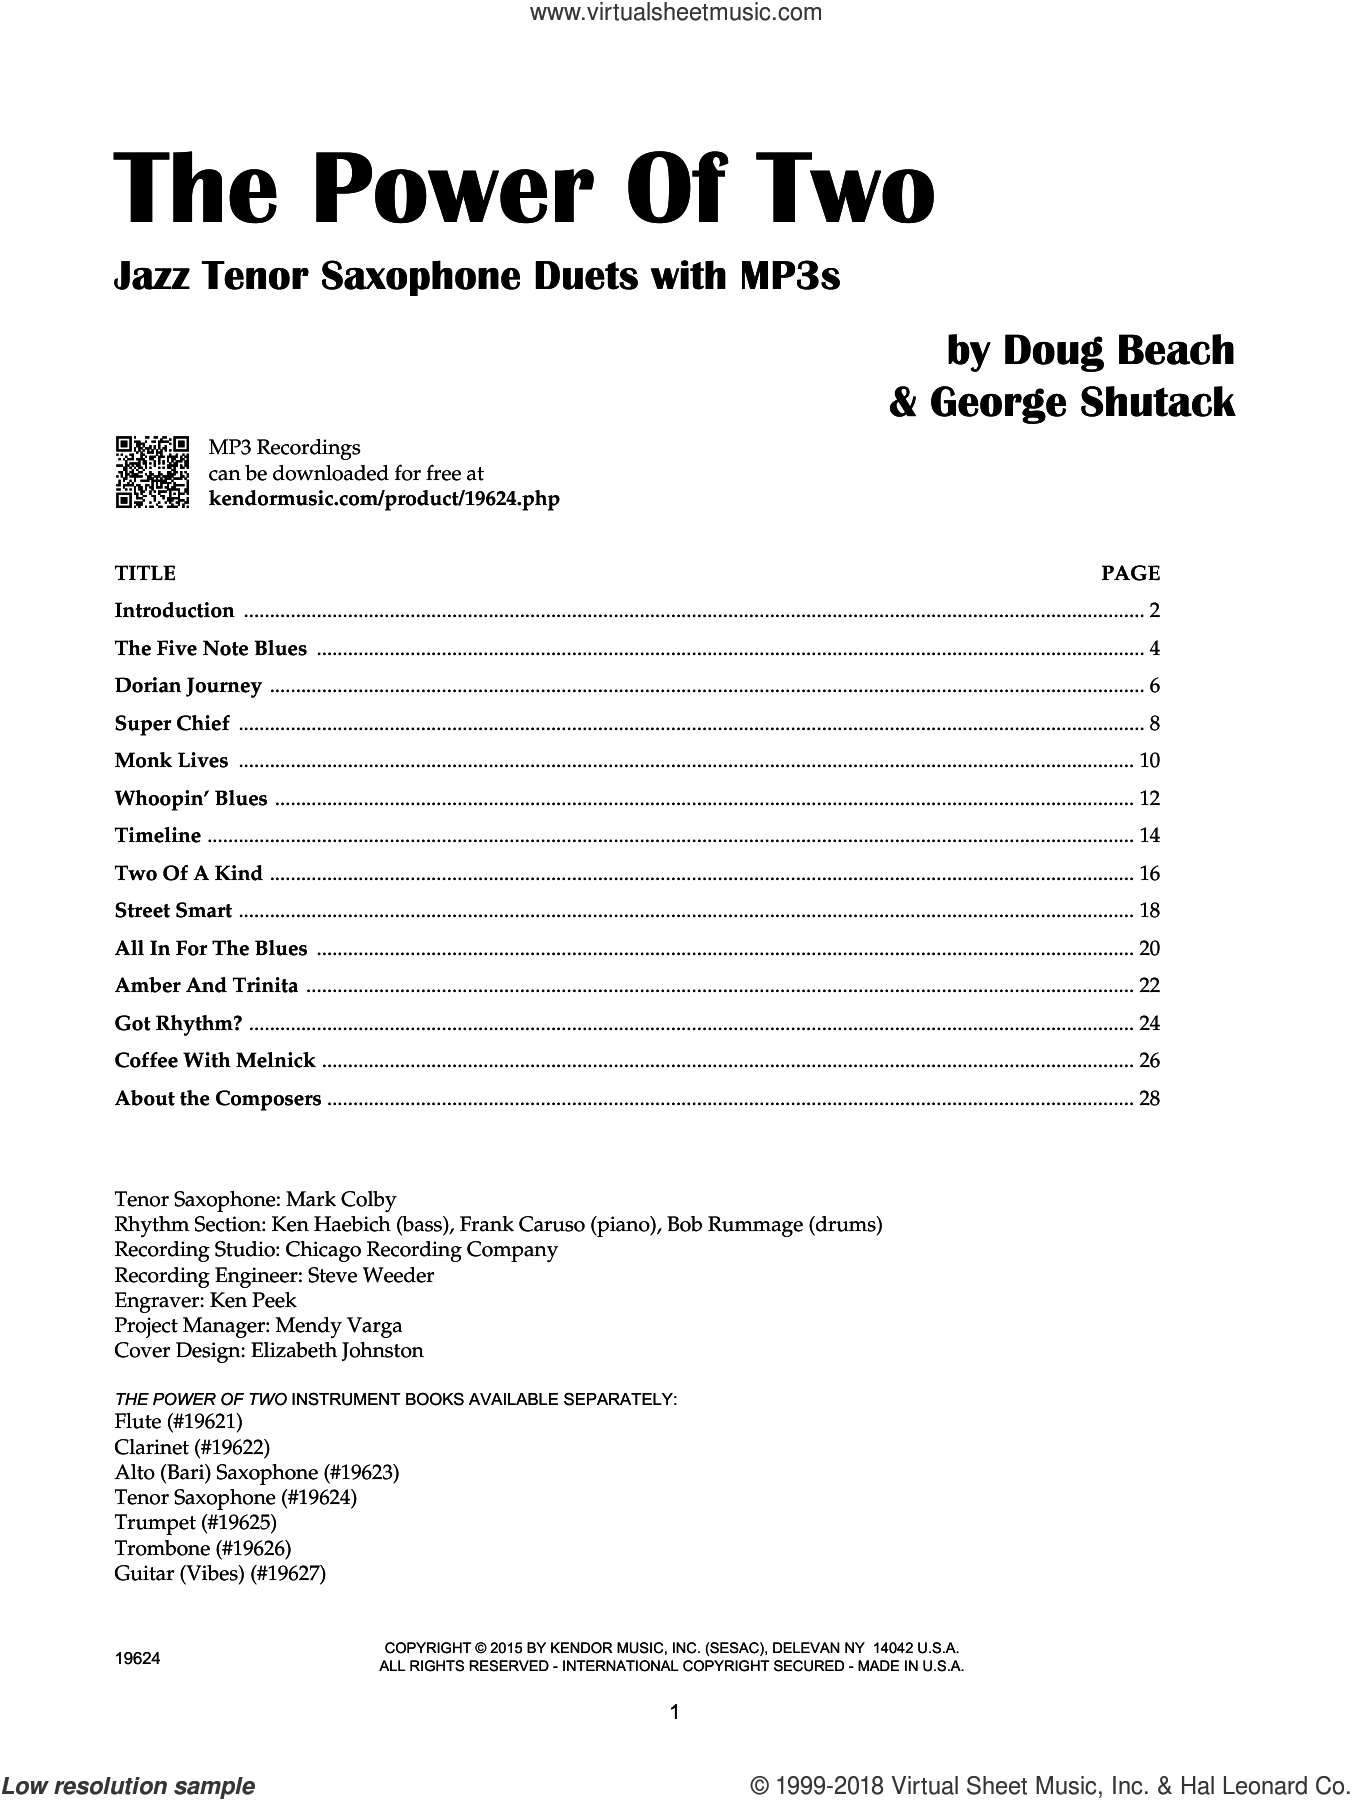 The Power Of Two - Tenor Saxophone sheet music for two tenor saxophones by Doug Beach and George Shutack, intermediate duet. Score Image Preview.